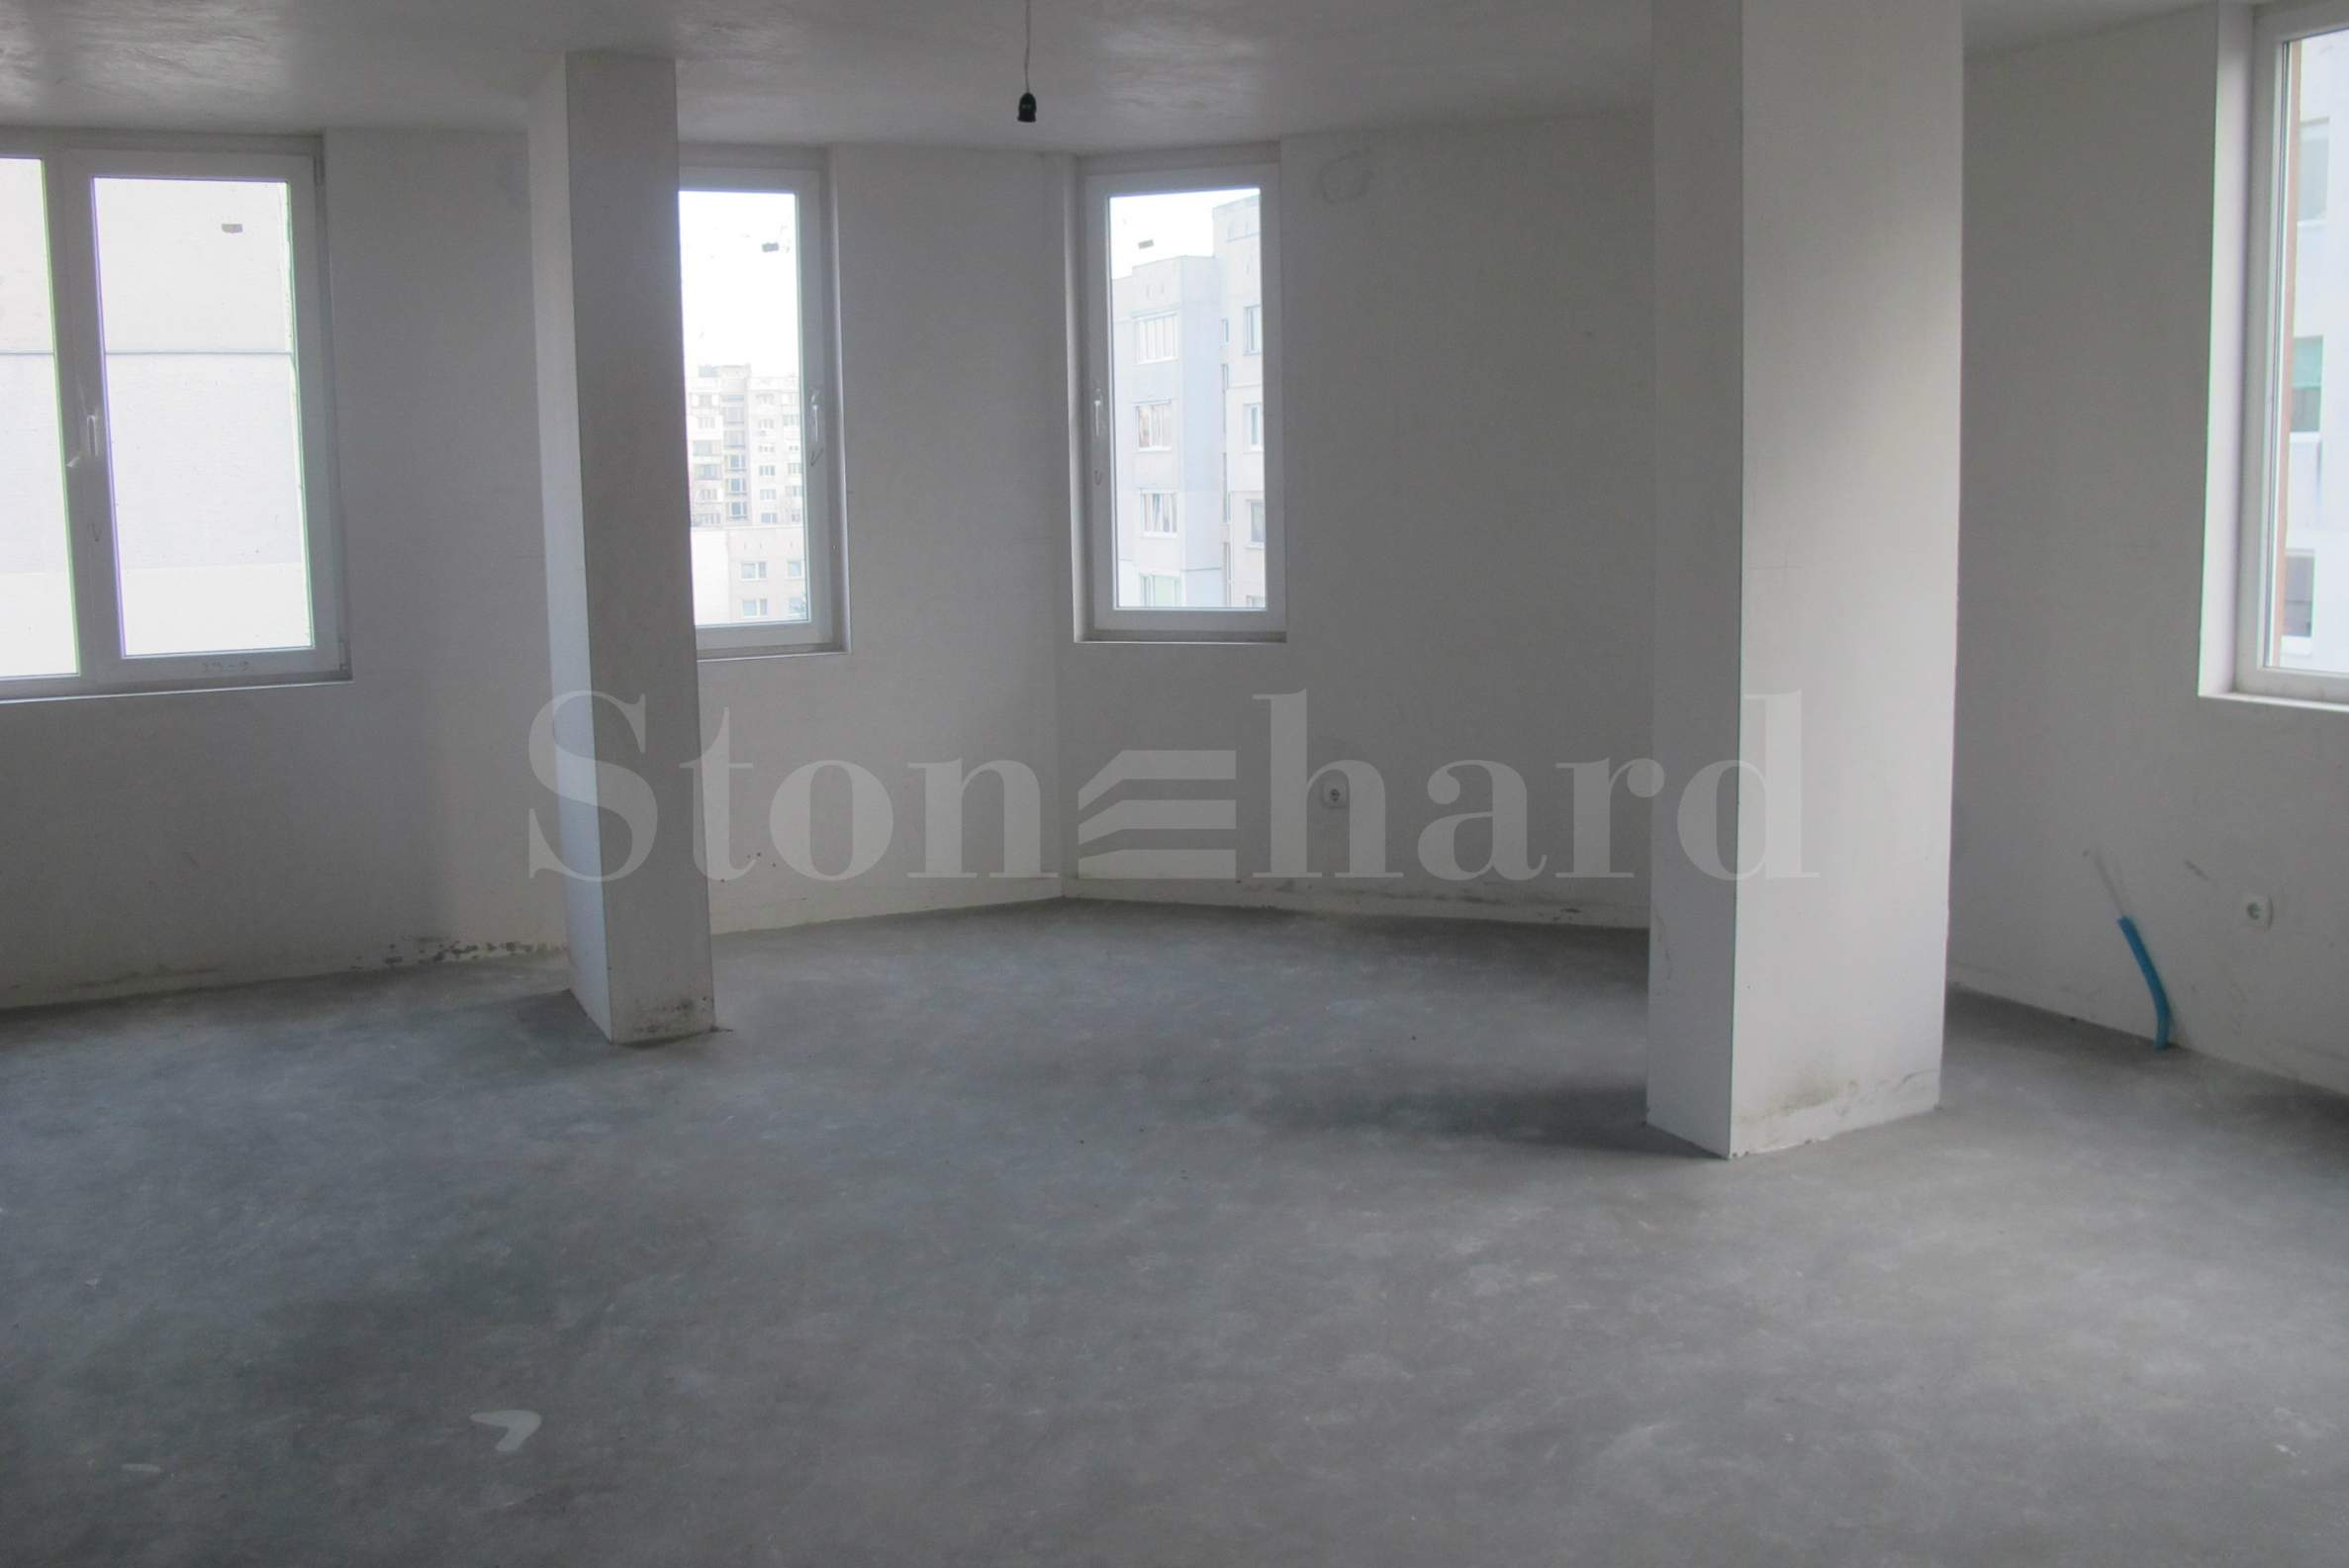 Apartments in a new building in Lyulin District2 - Stonehard